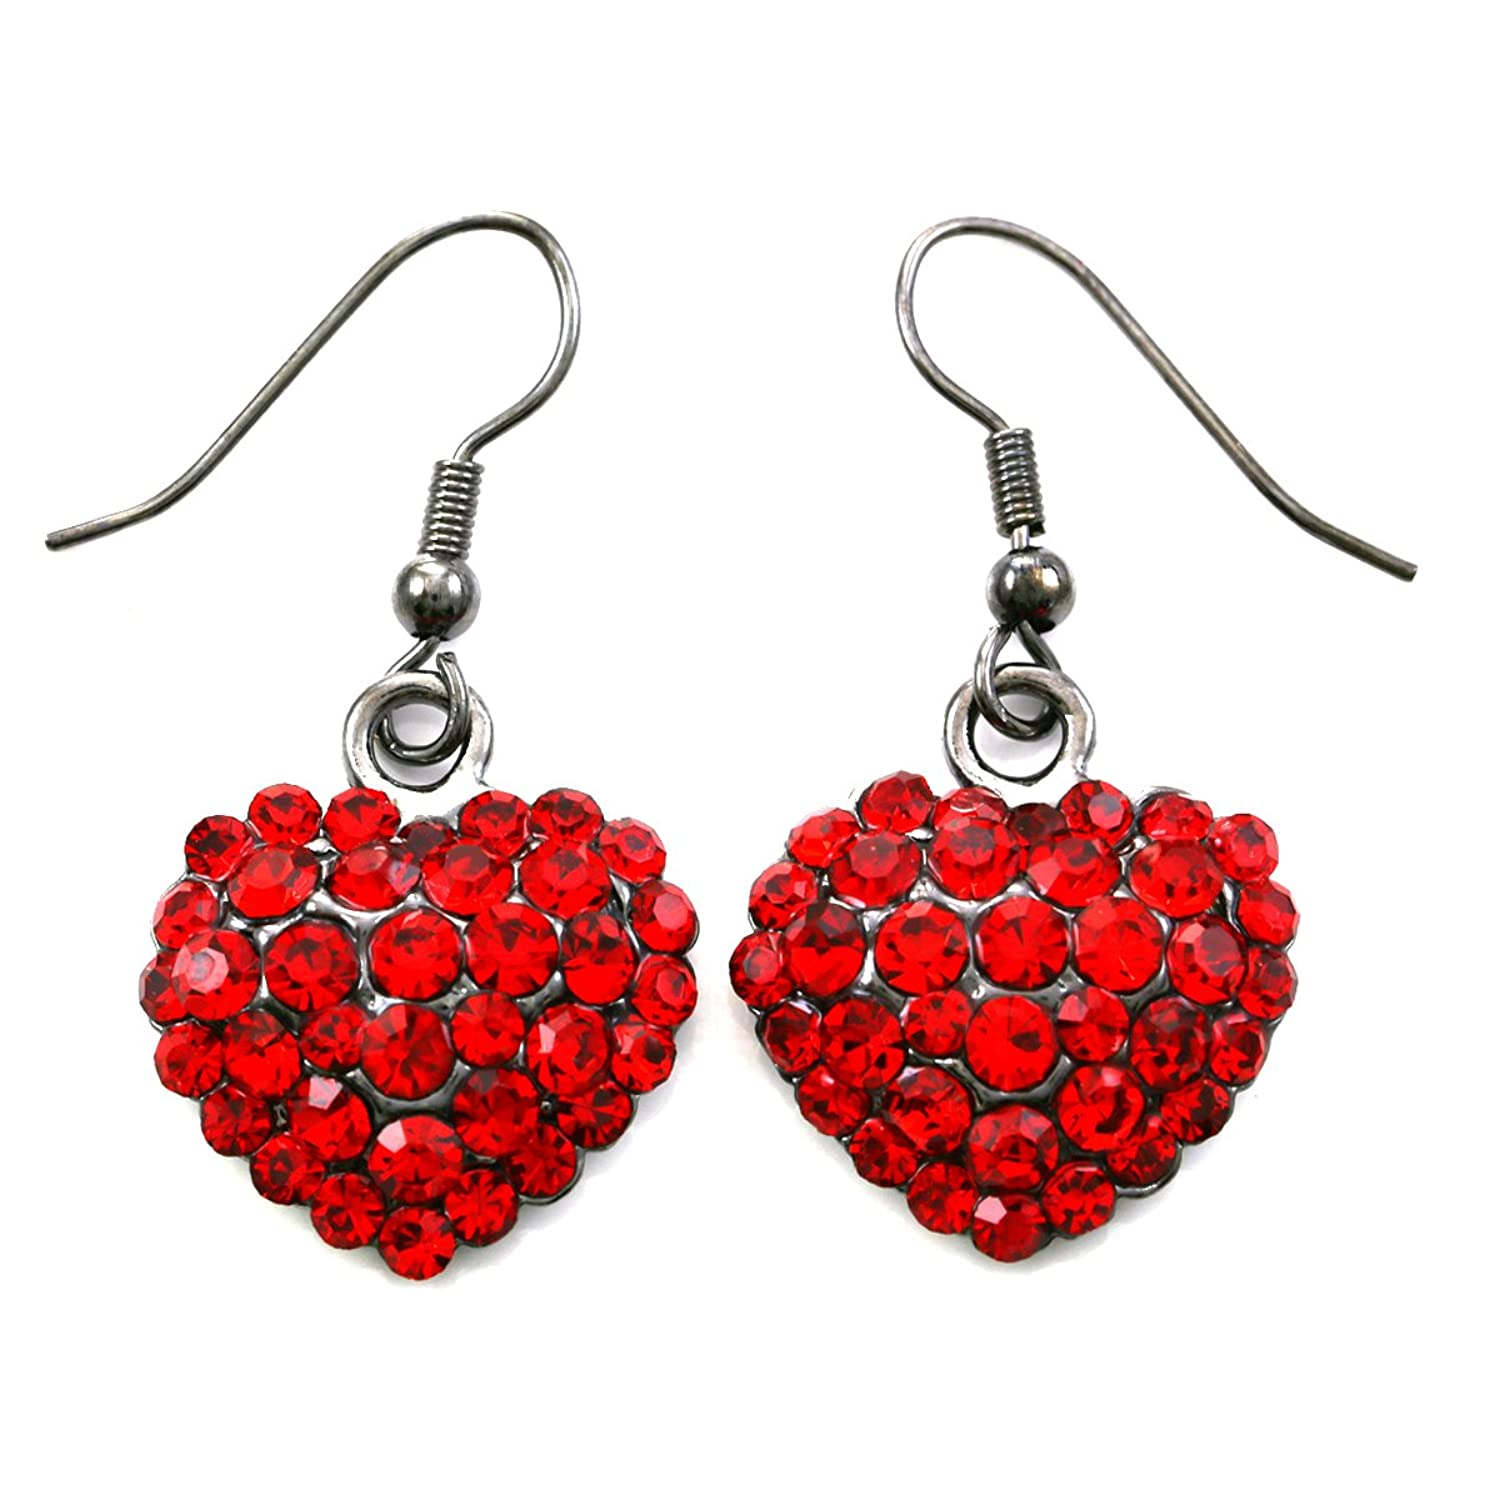 Amazon: Valentine's Day Red Heart Earrings Love Be Mine Dangle Hook  Style Red Paved Rhinestone Fashion Jewelry: Jewelry